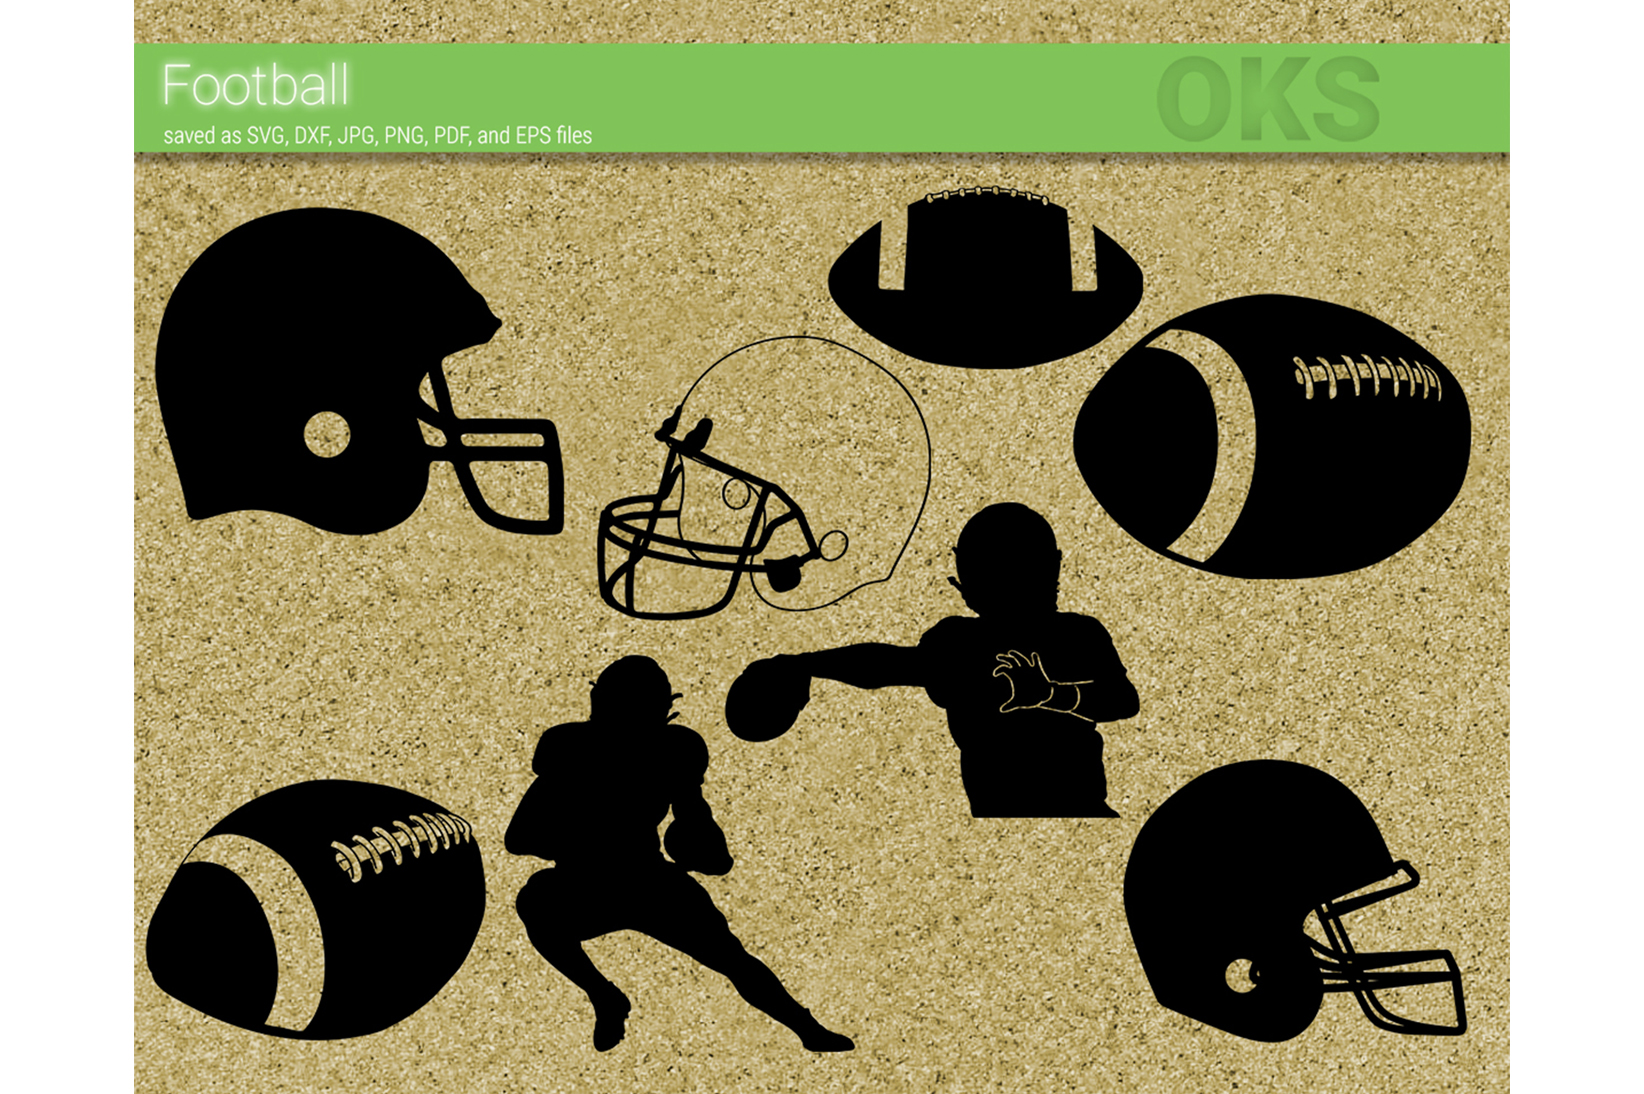 Download Free Football Graphic By Crafteroks Creative Fabrica for Cricut Explore, Silhouette and other cutting machines.